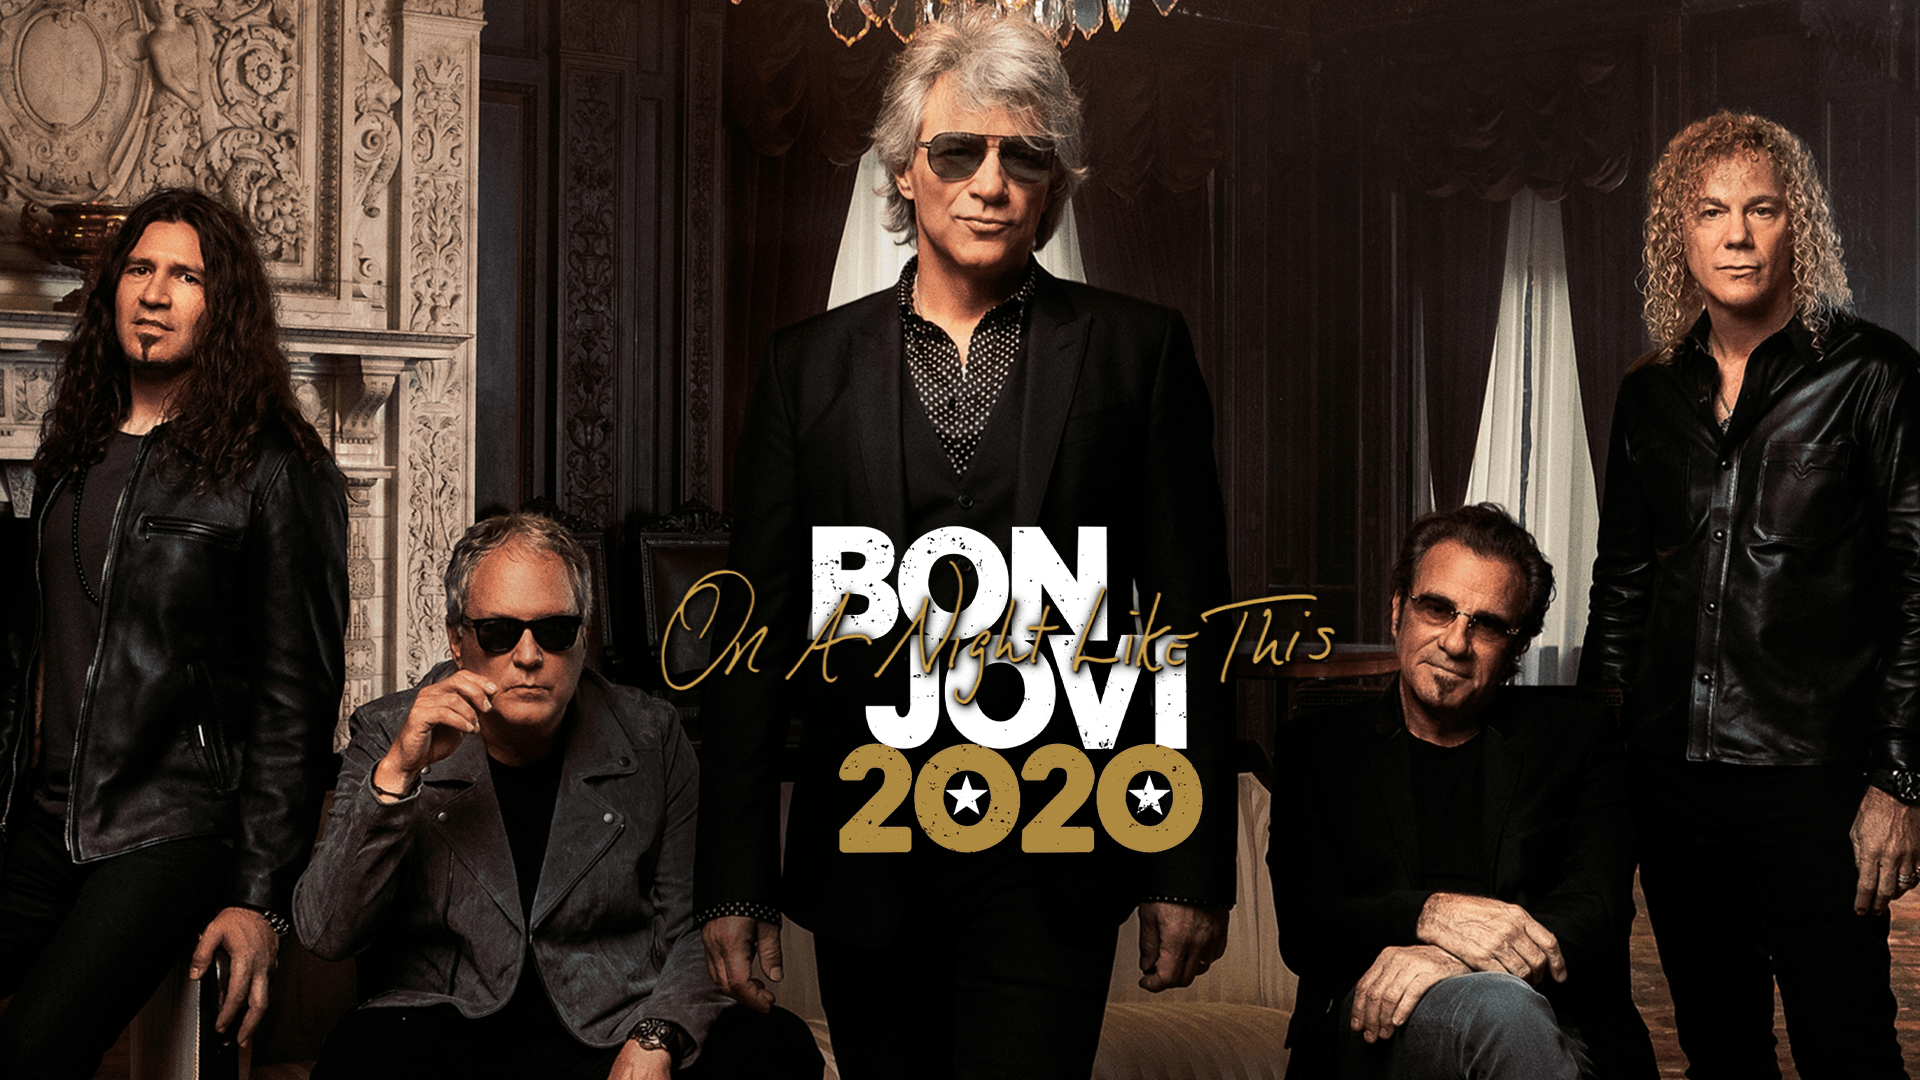 Bon Jovi 2020: On A Night Like This